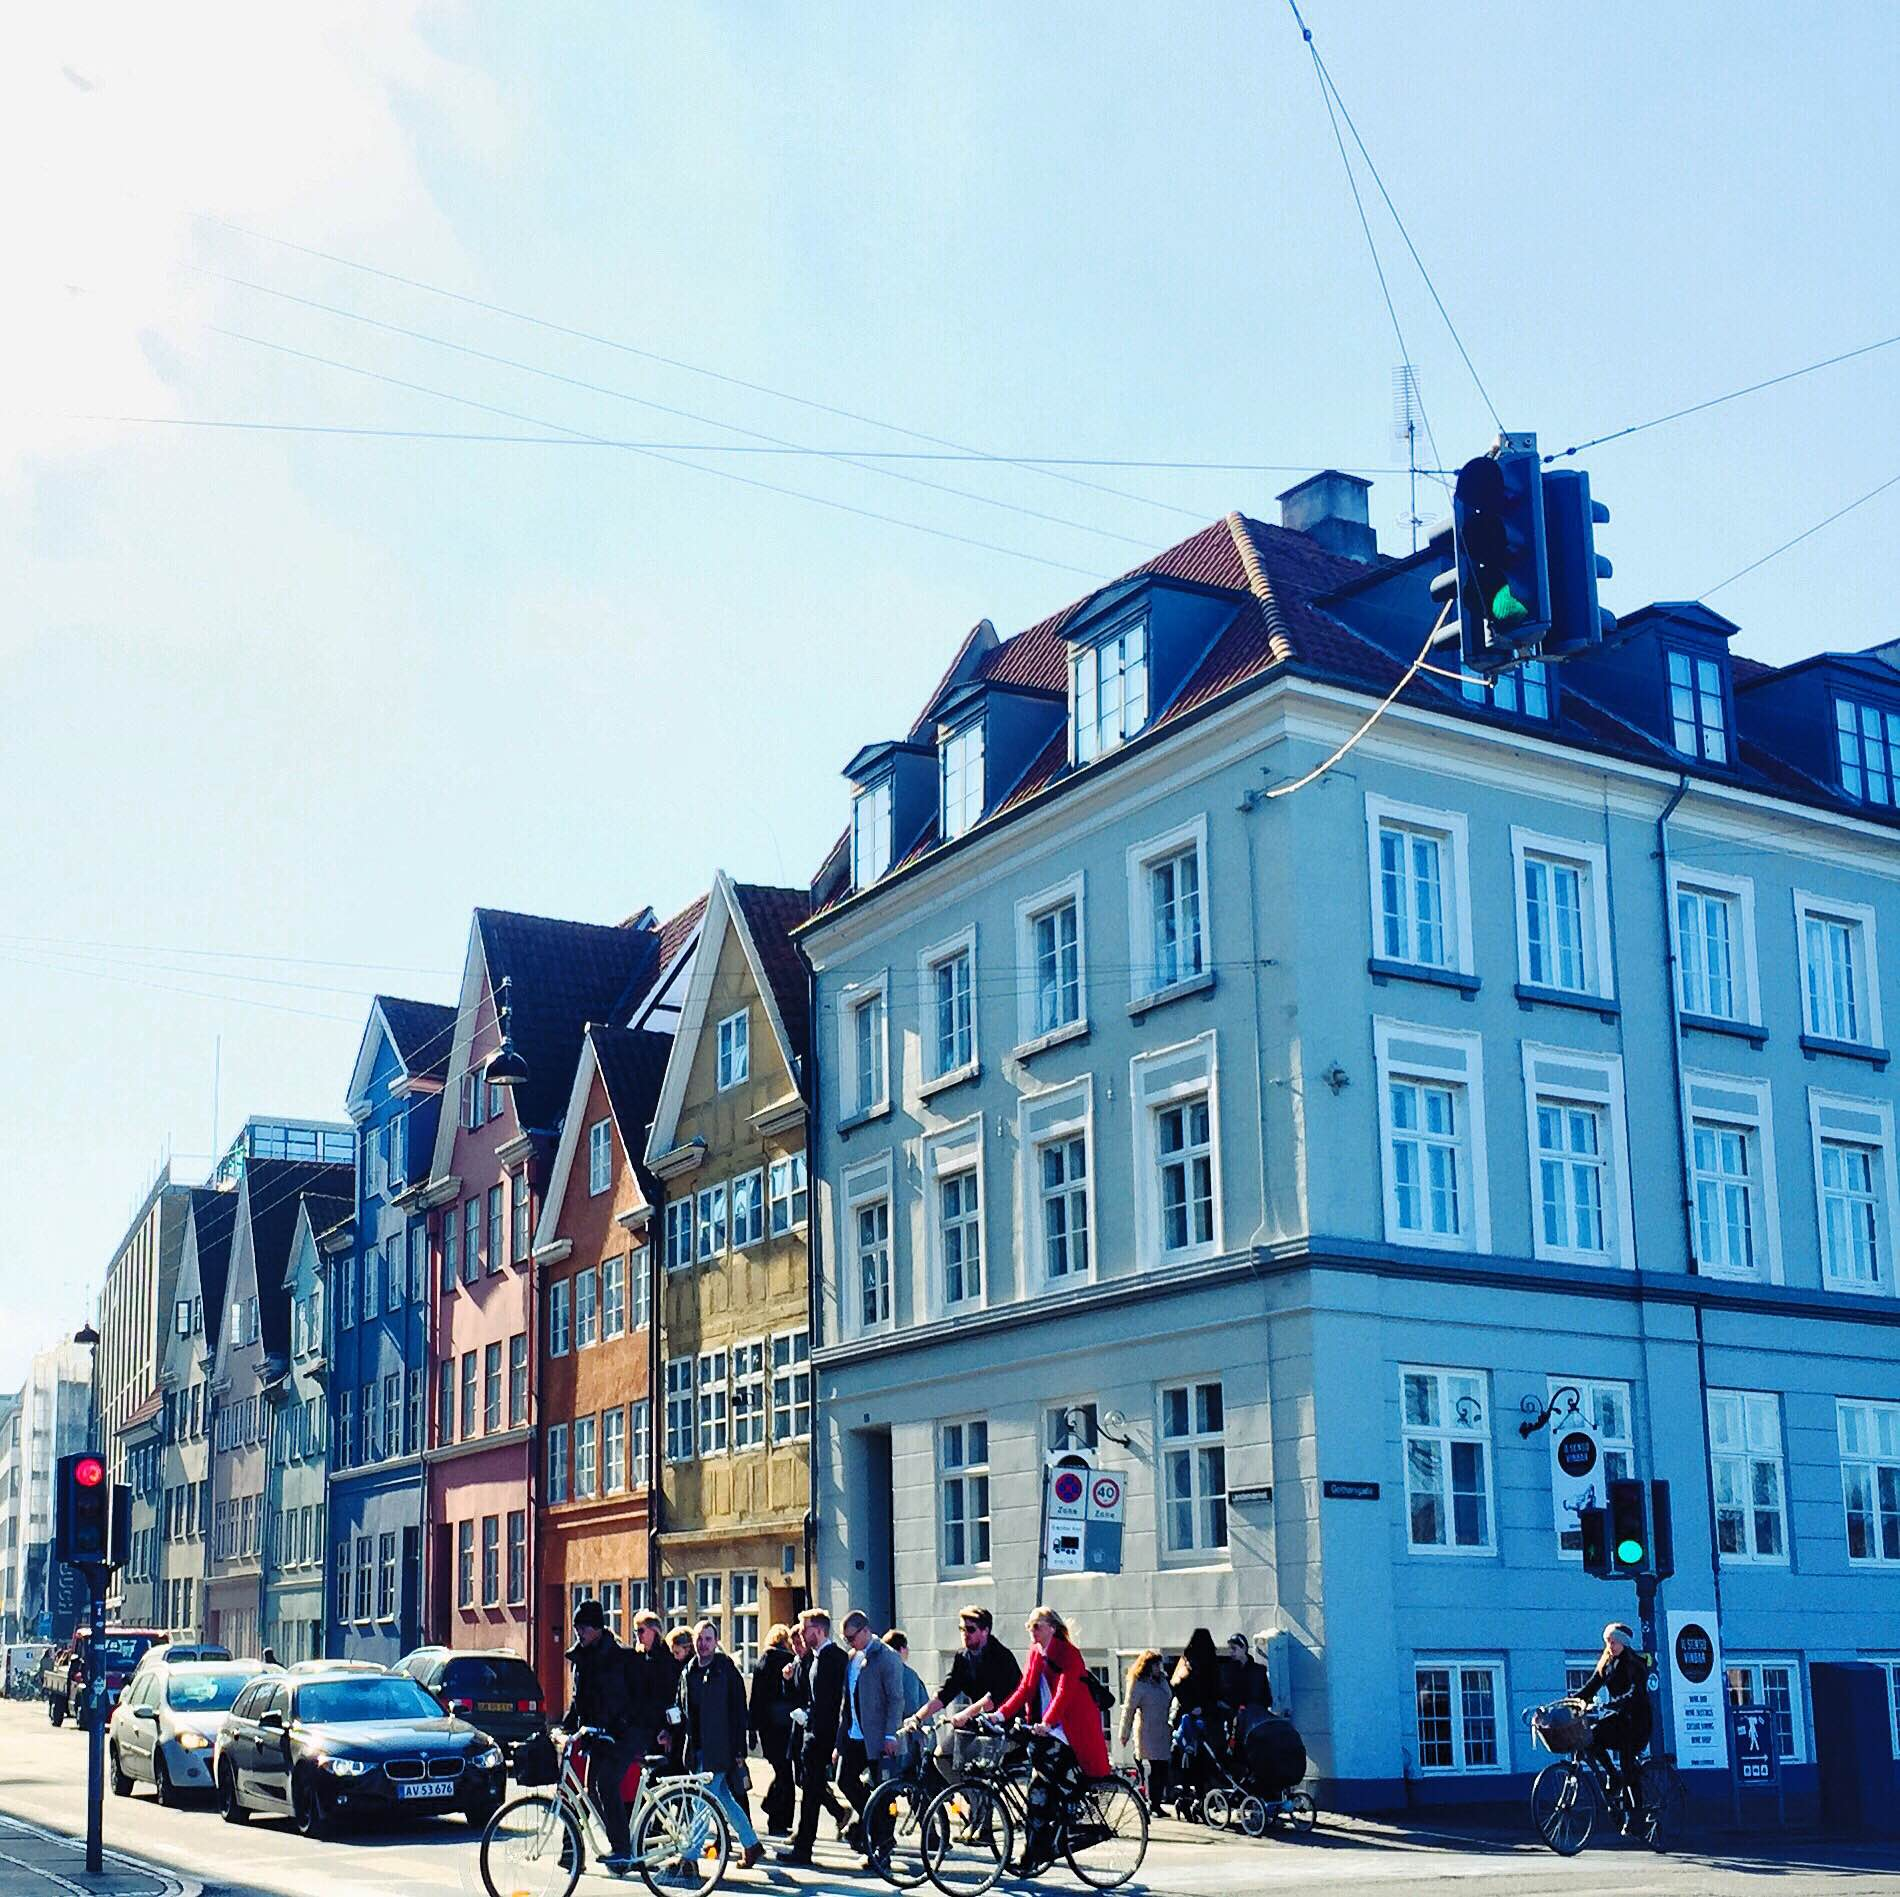 Colorful houses of Copenhagen. Landemærket